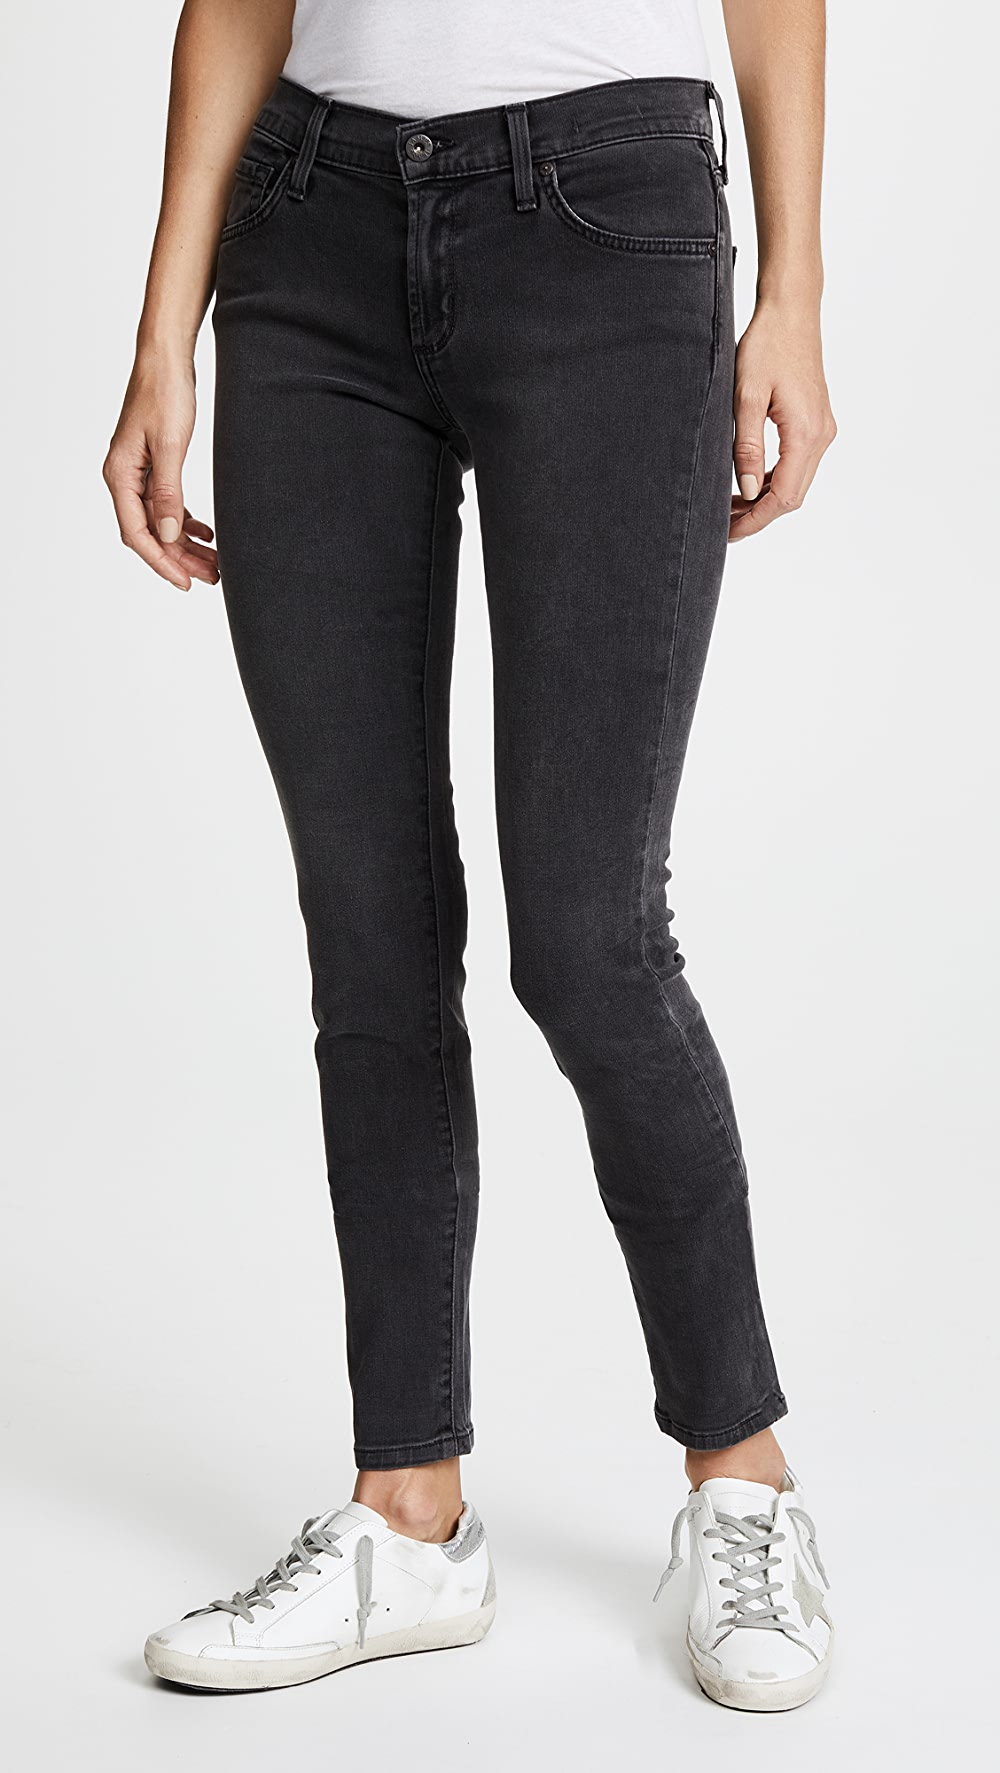 Conscientious James Jeans - Twiggy 5 Pocket Skinny Jeans Driving A Roaring Trade